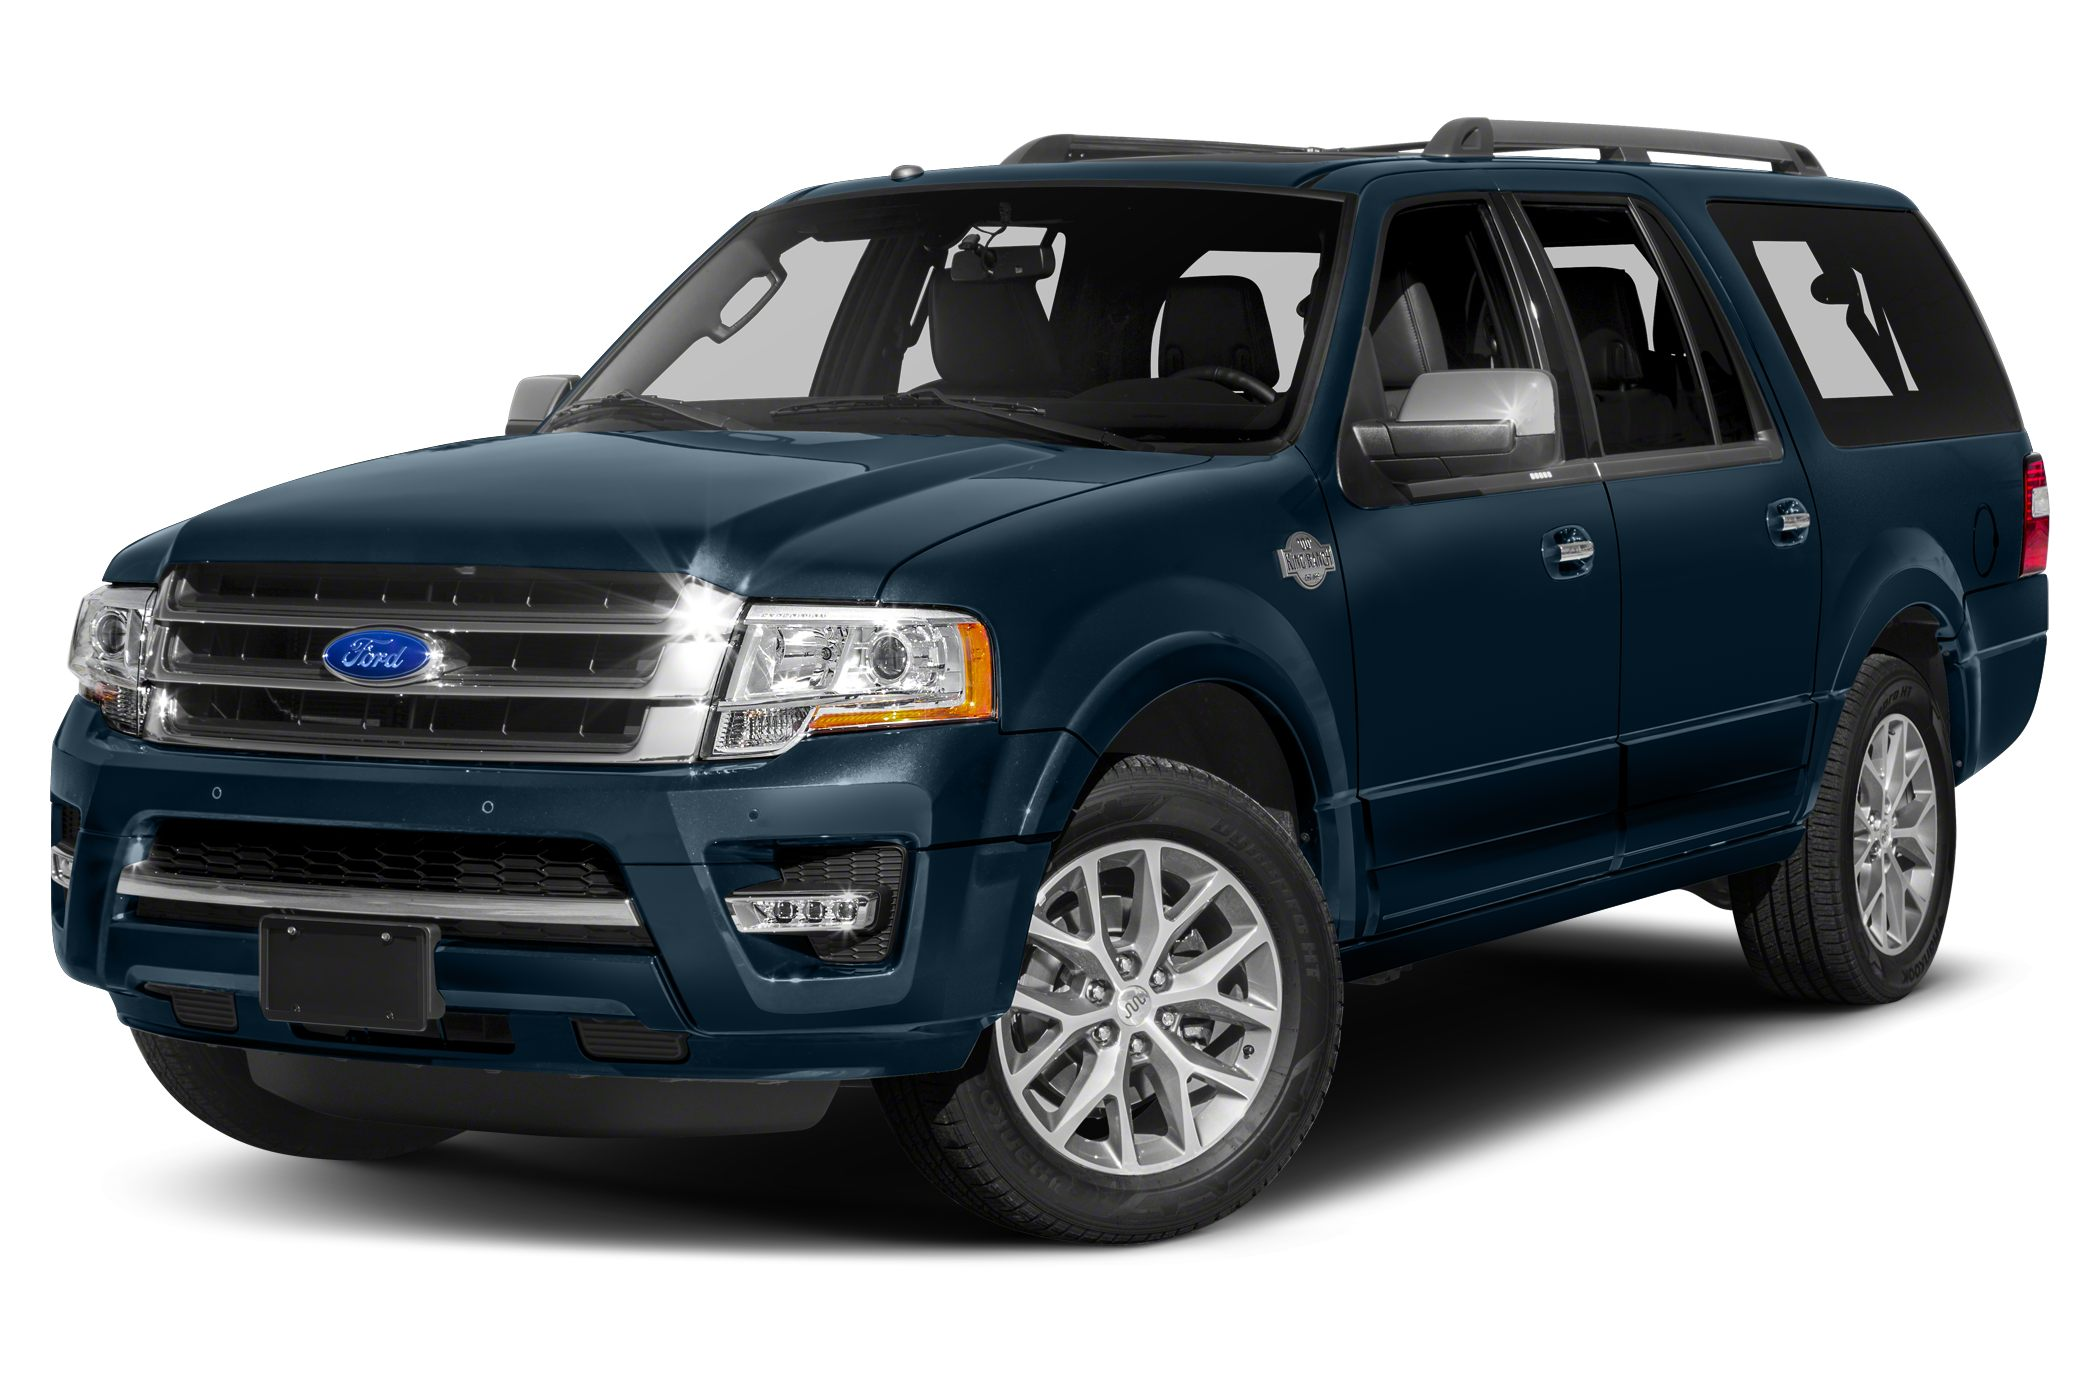 King Ranch Expedition >> 2017 Ford Expedition El King Ranch 4dr 4x4 Pricing And Options